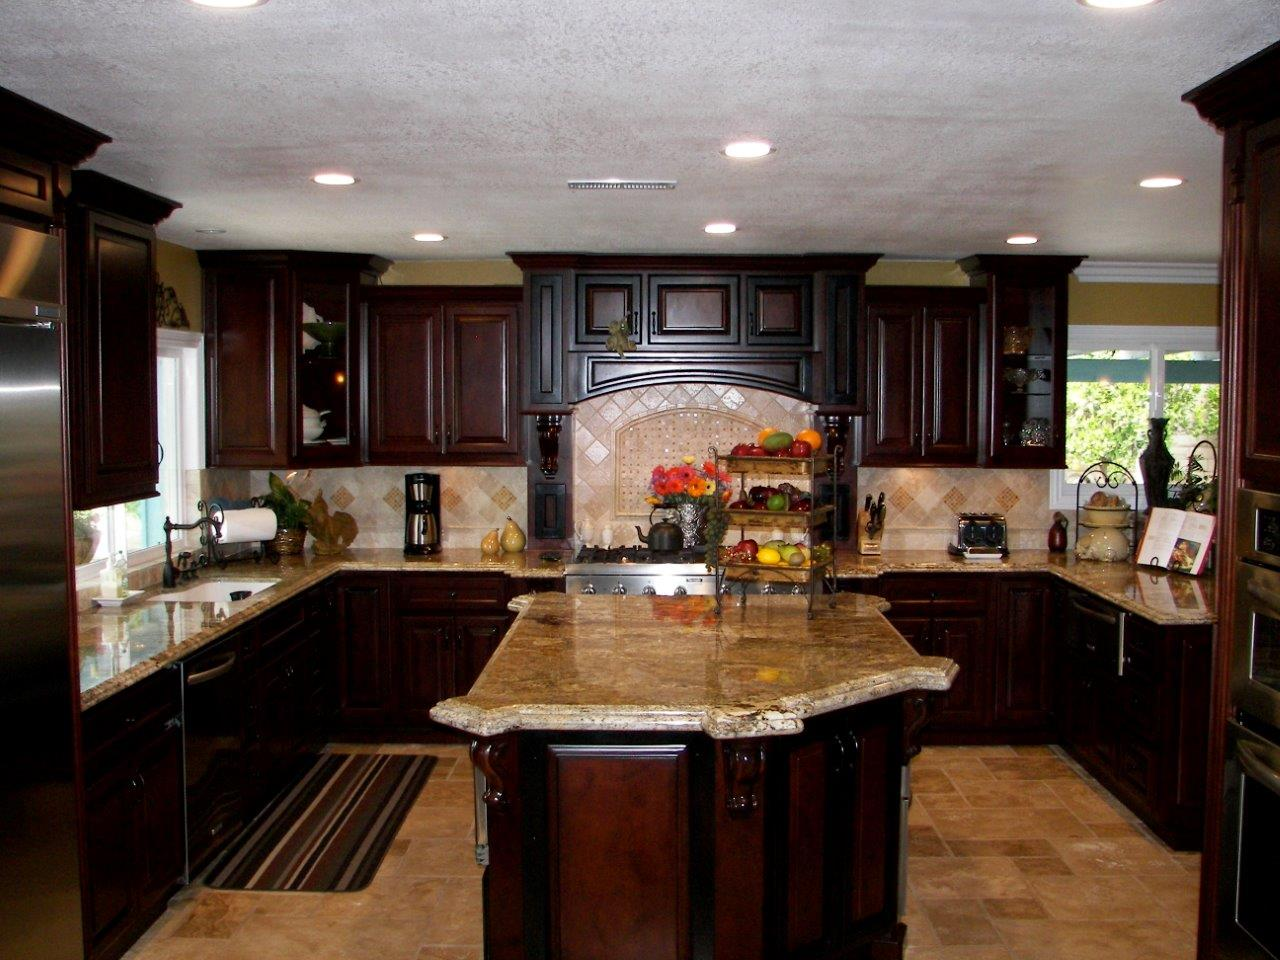 Kitchen design trend consistent kitchen island height woodwork